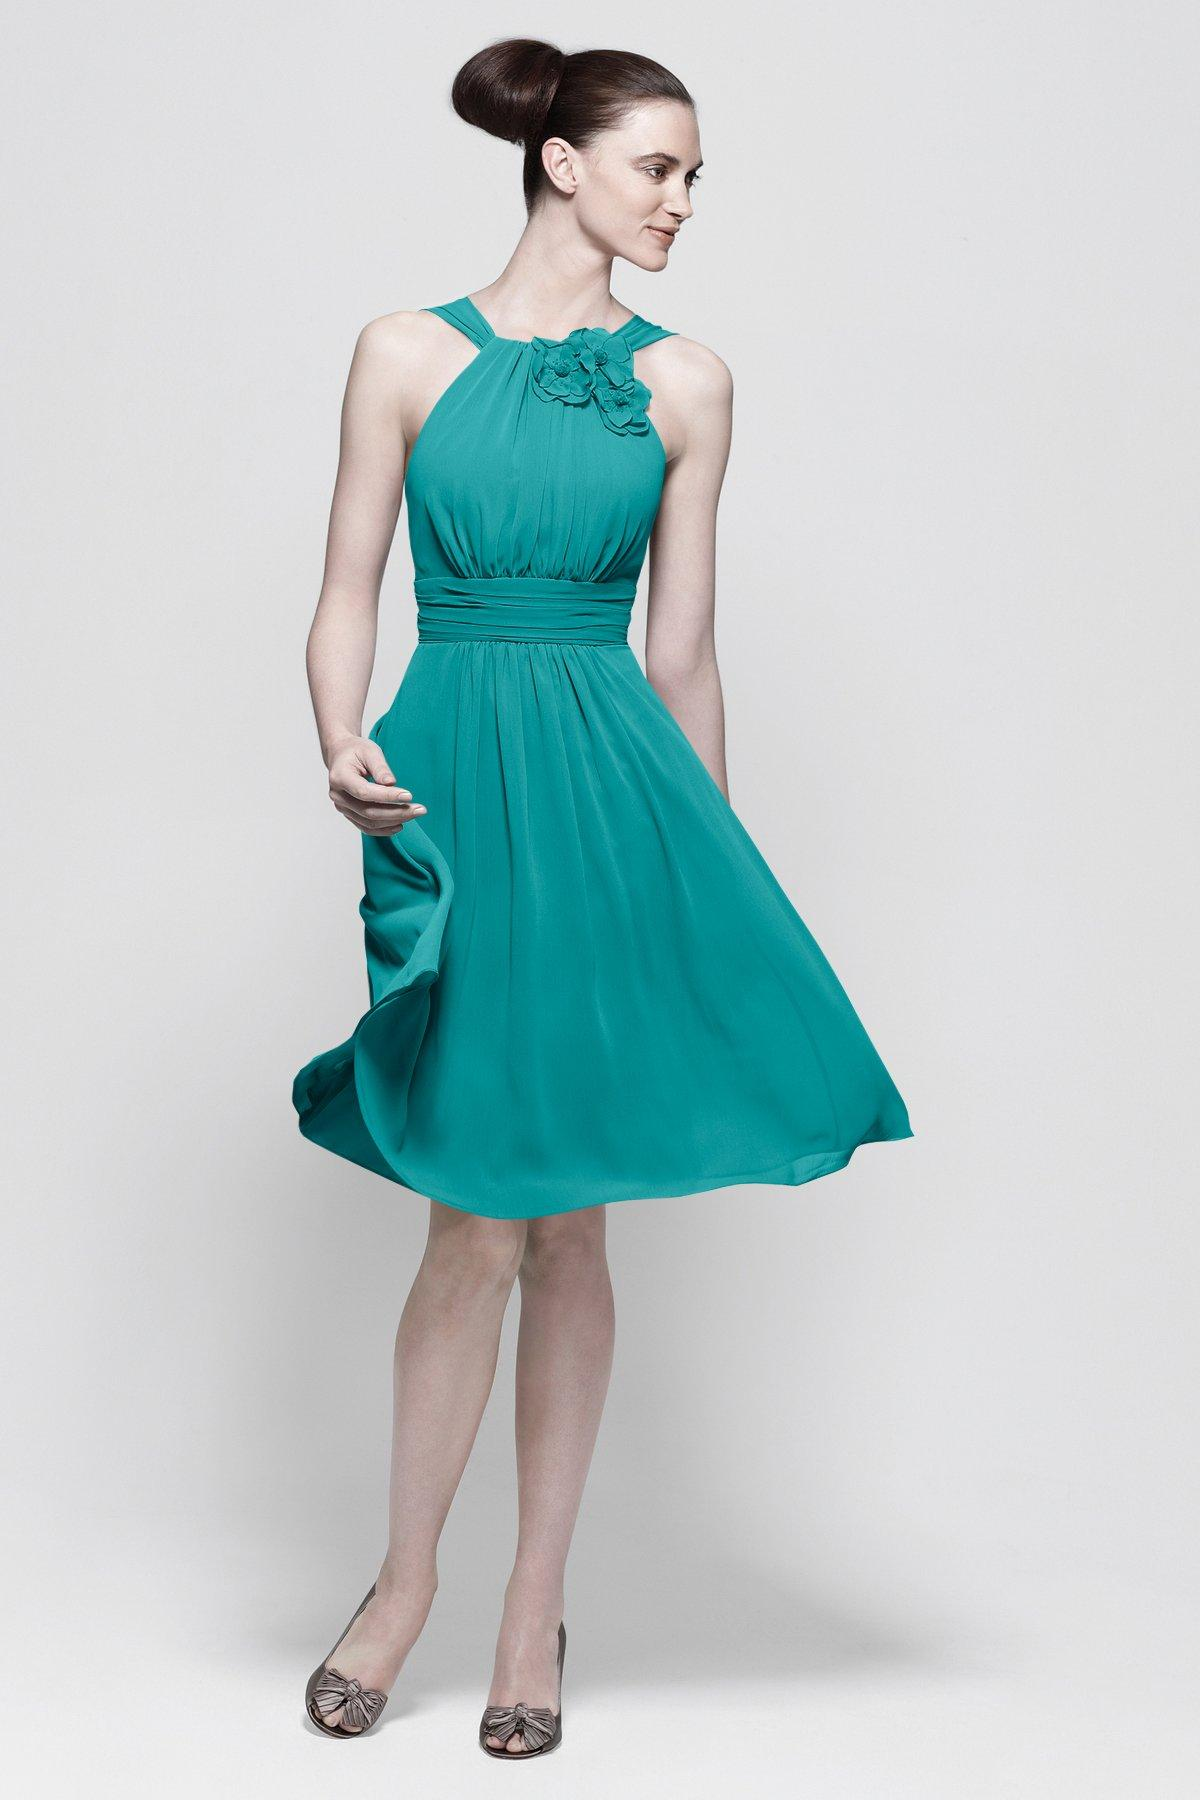 Turquoise bridesmaid dresses 2015 short maid of honor dresses 25 ombrellifo Choice Image